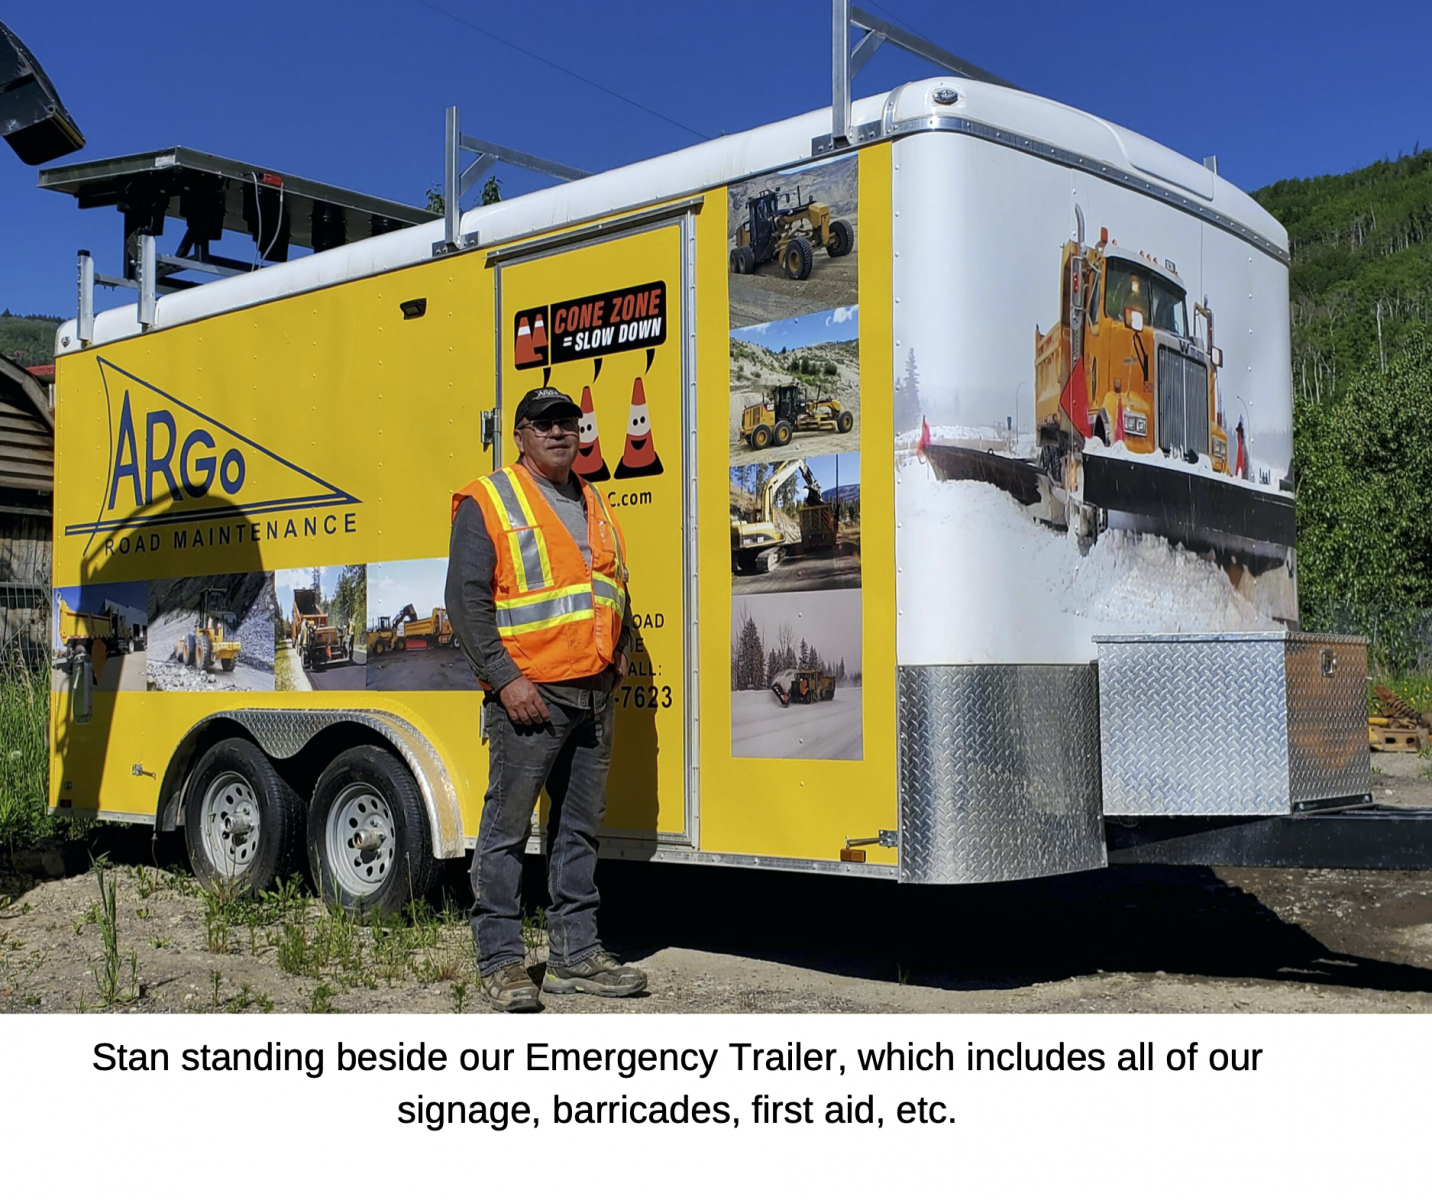 Stan standing beside our Emergency Trailer, which includes all of our signage, barricades, first aid, etc.